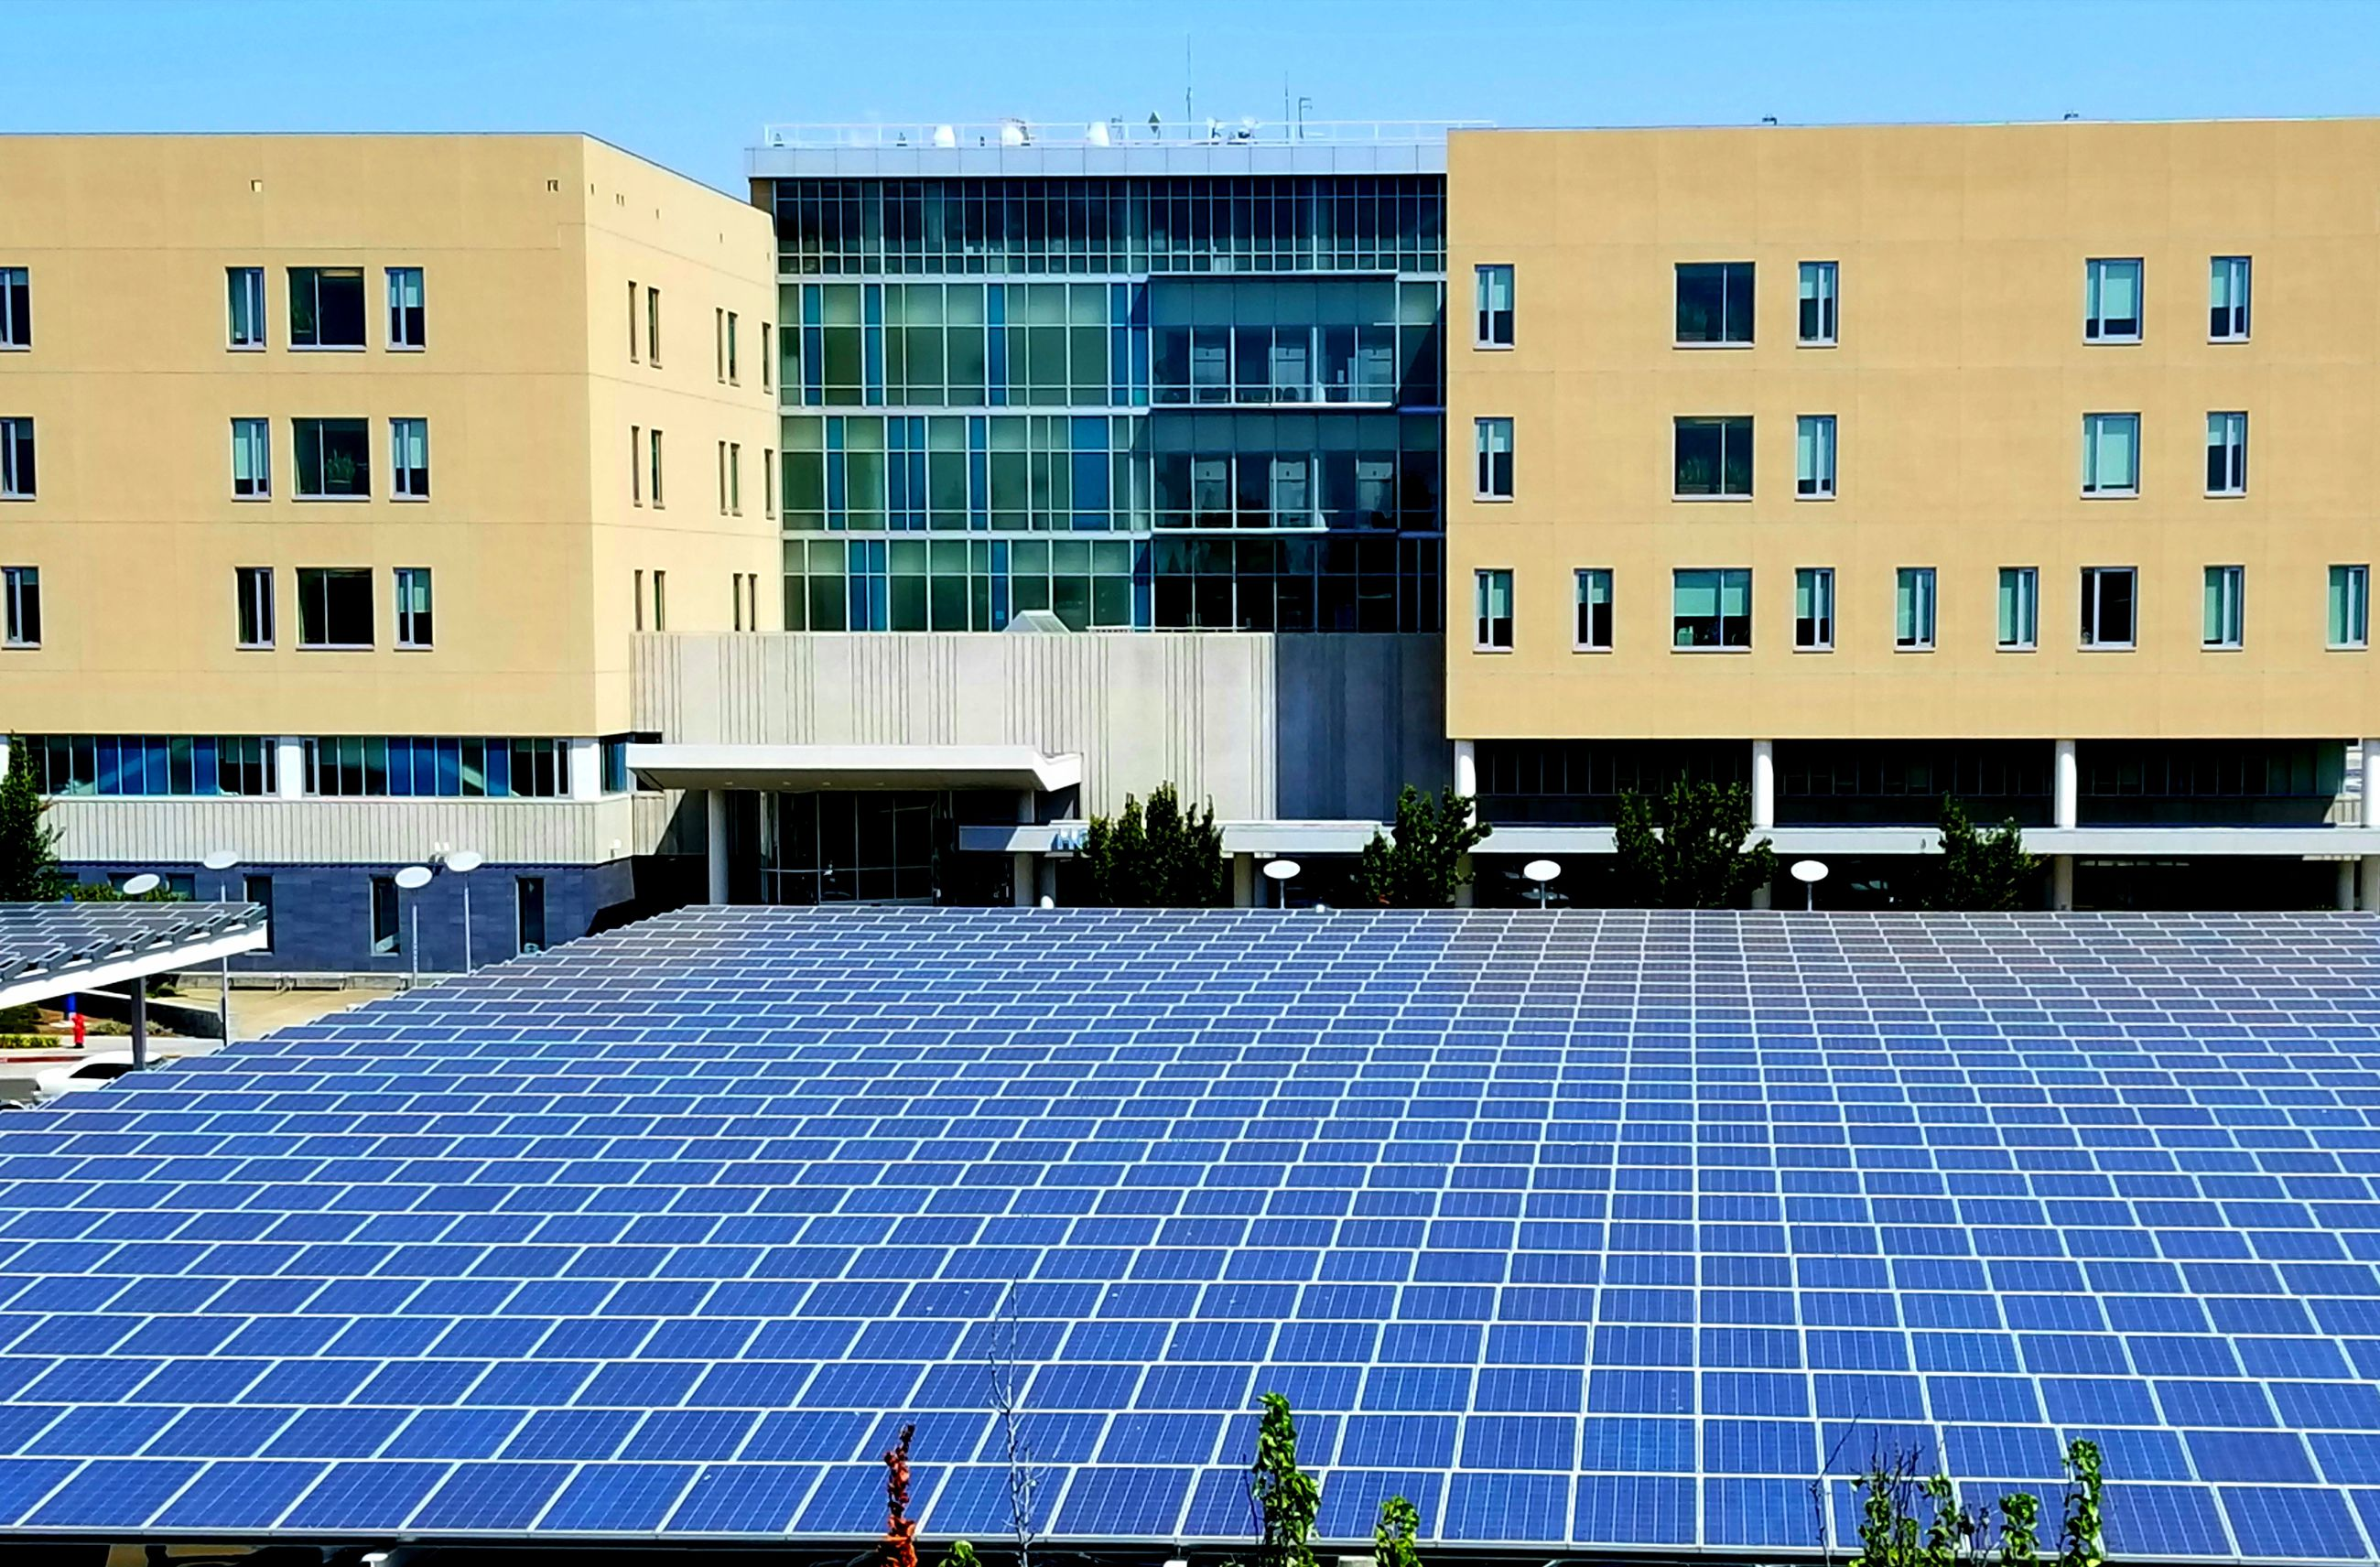 solar panel, solar energy, environmental conservation, alternative energy, fuel and power generation, renewable energy, environmental issues, electricity, sun, built structure, solar power station, solar equipment, architecture, modern, day, building exterior, technology, no people, outdoors